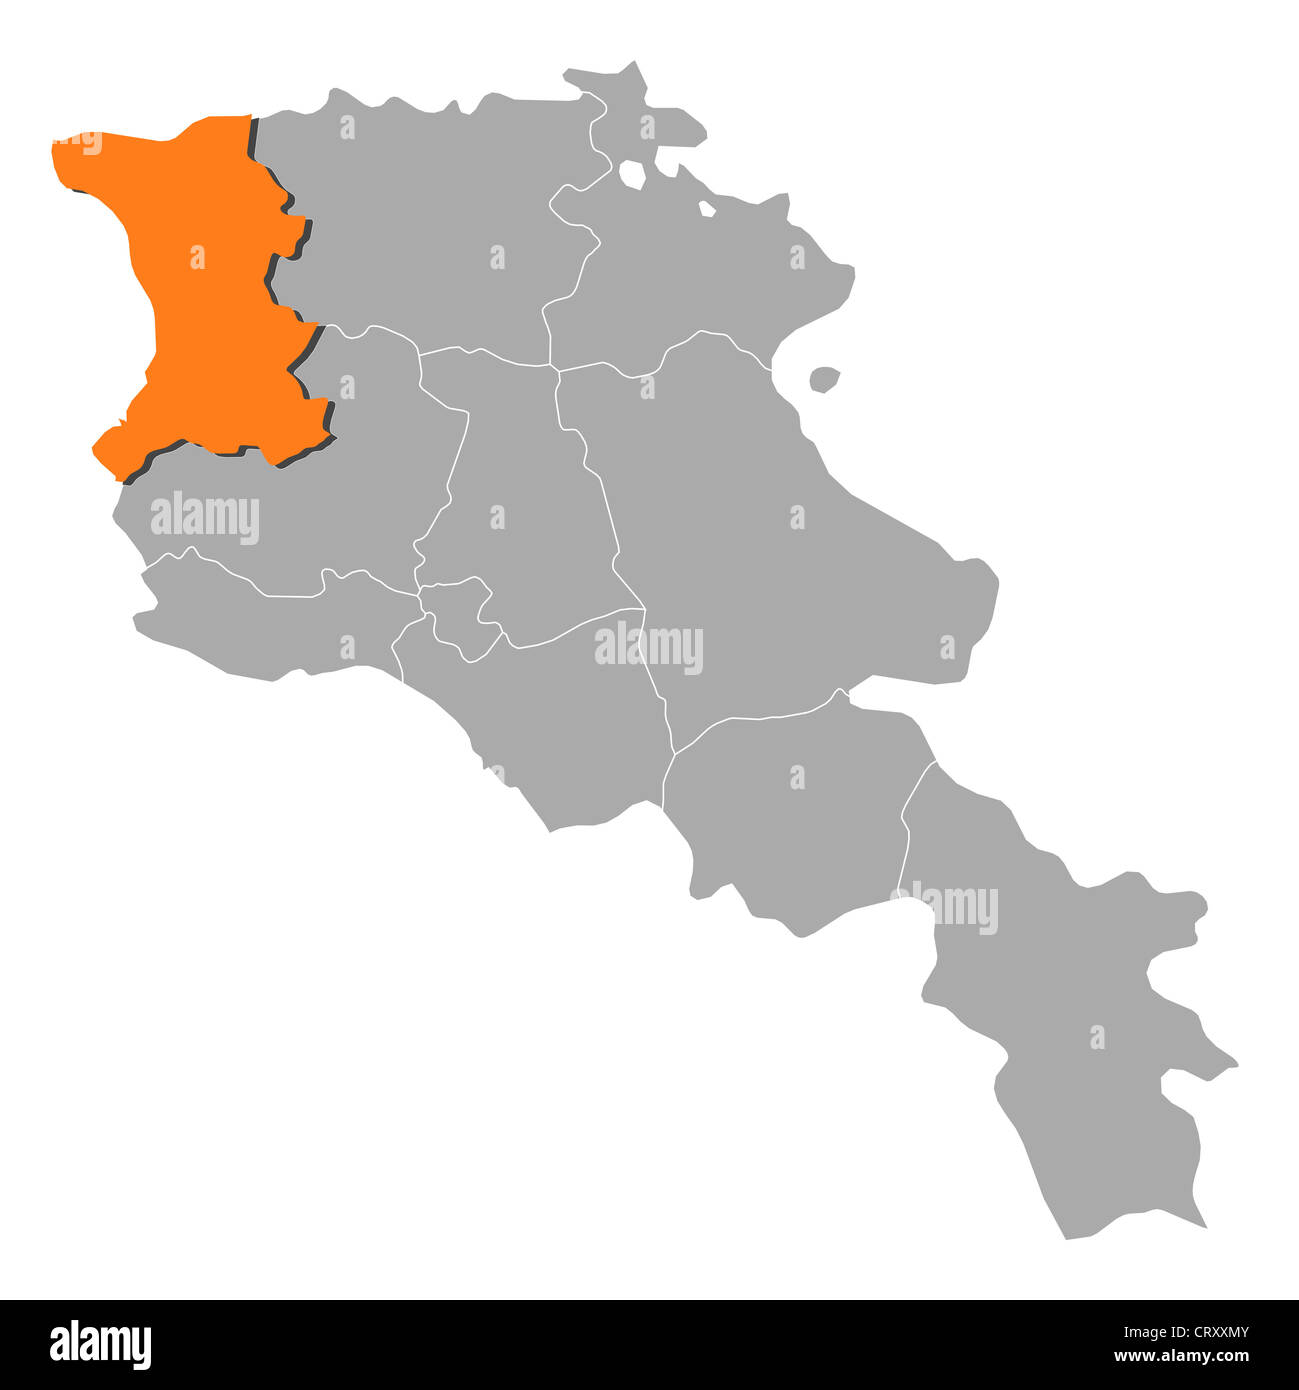 Political map of Armenia with the several states where Shirak is